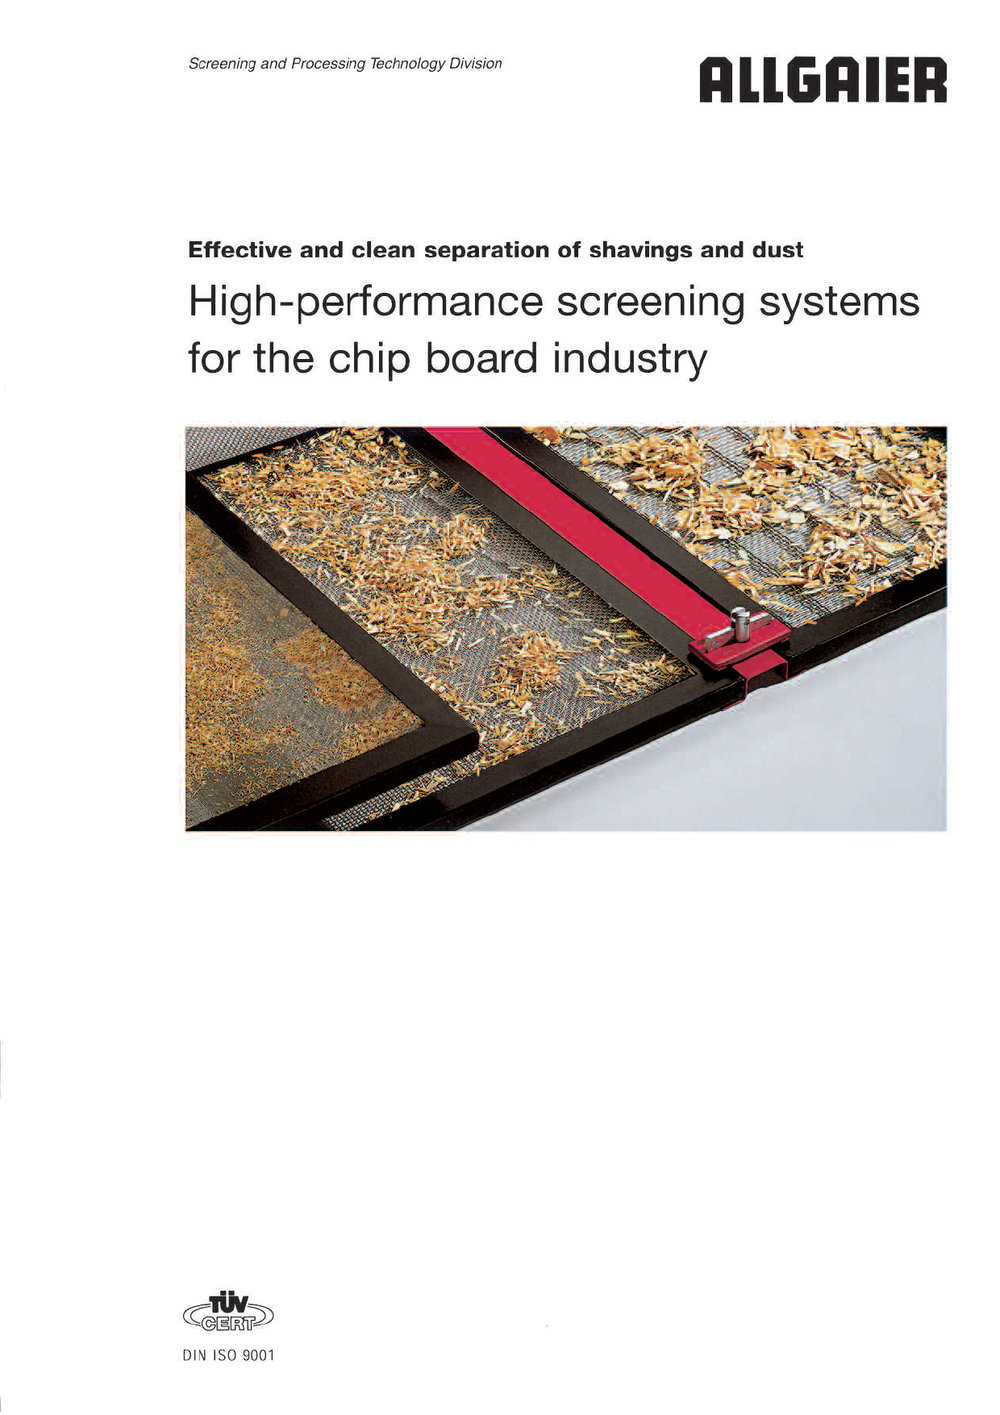 High-performance screening systems for the chip board industry